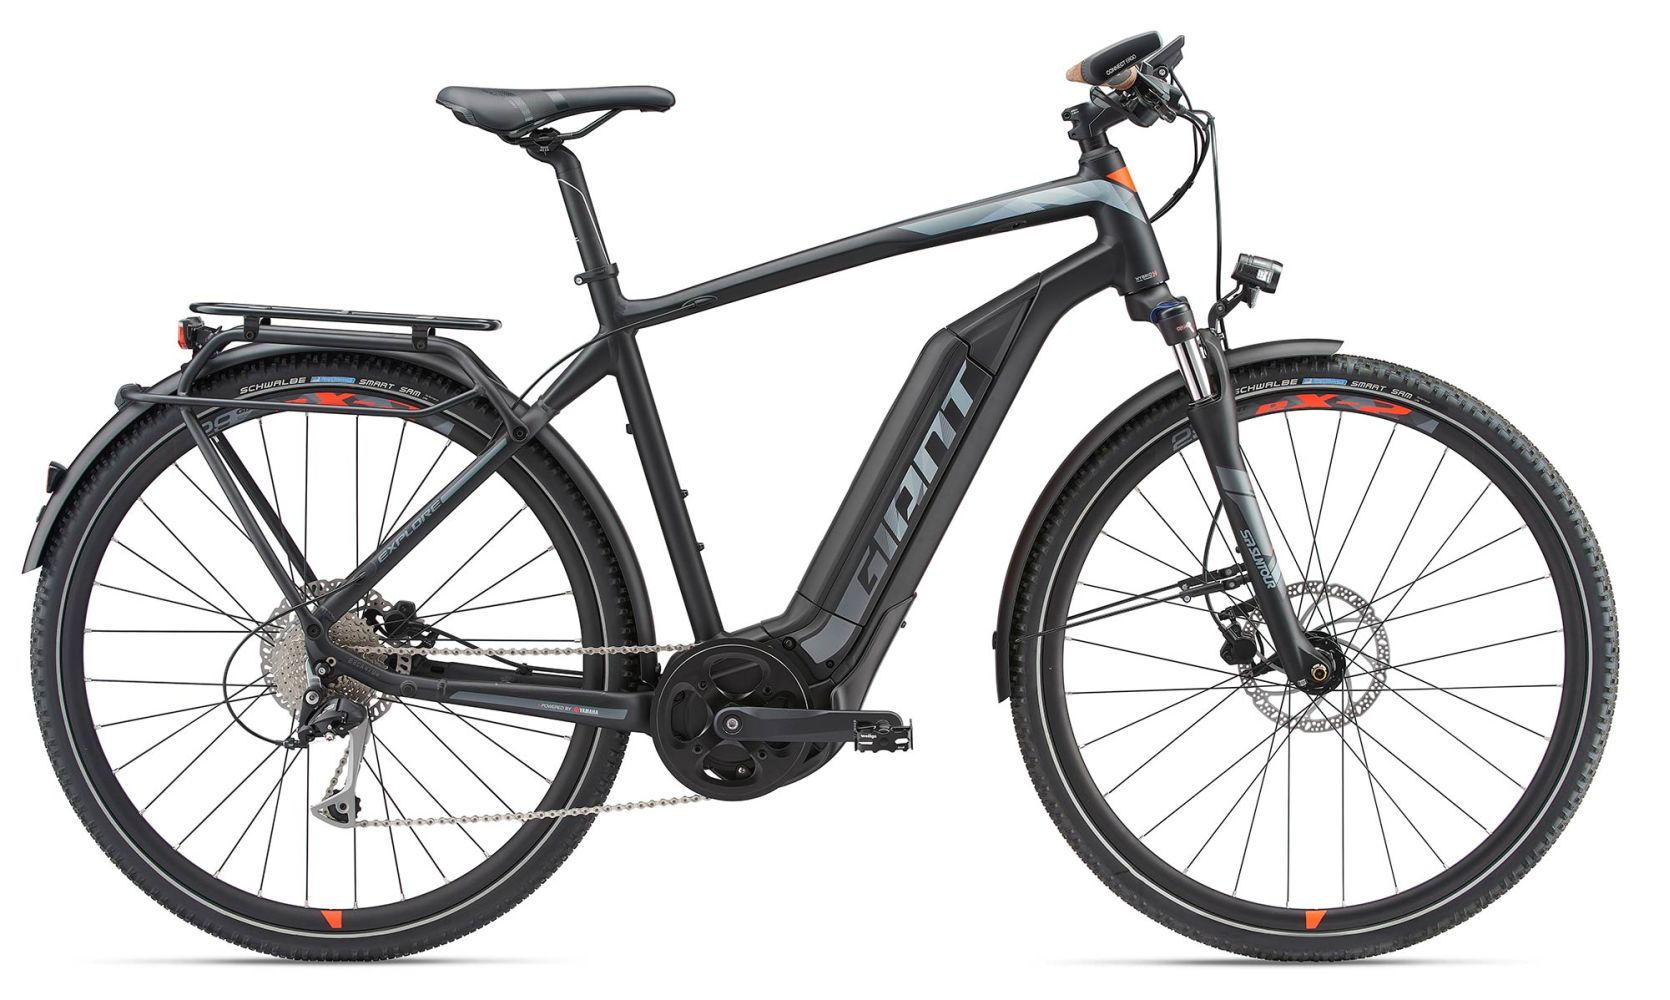 8ccc3508e8765a 2018 Giant Explore E+ 2 S5 GTS 25km Mens Electric Hybrid bike in Black